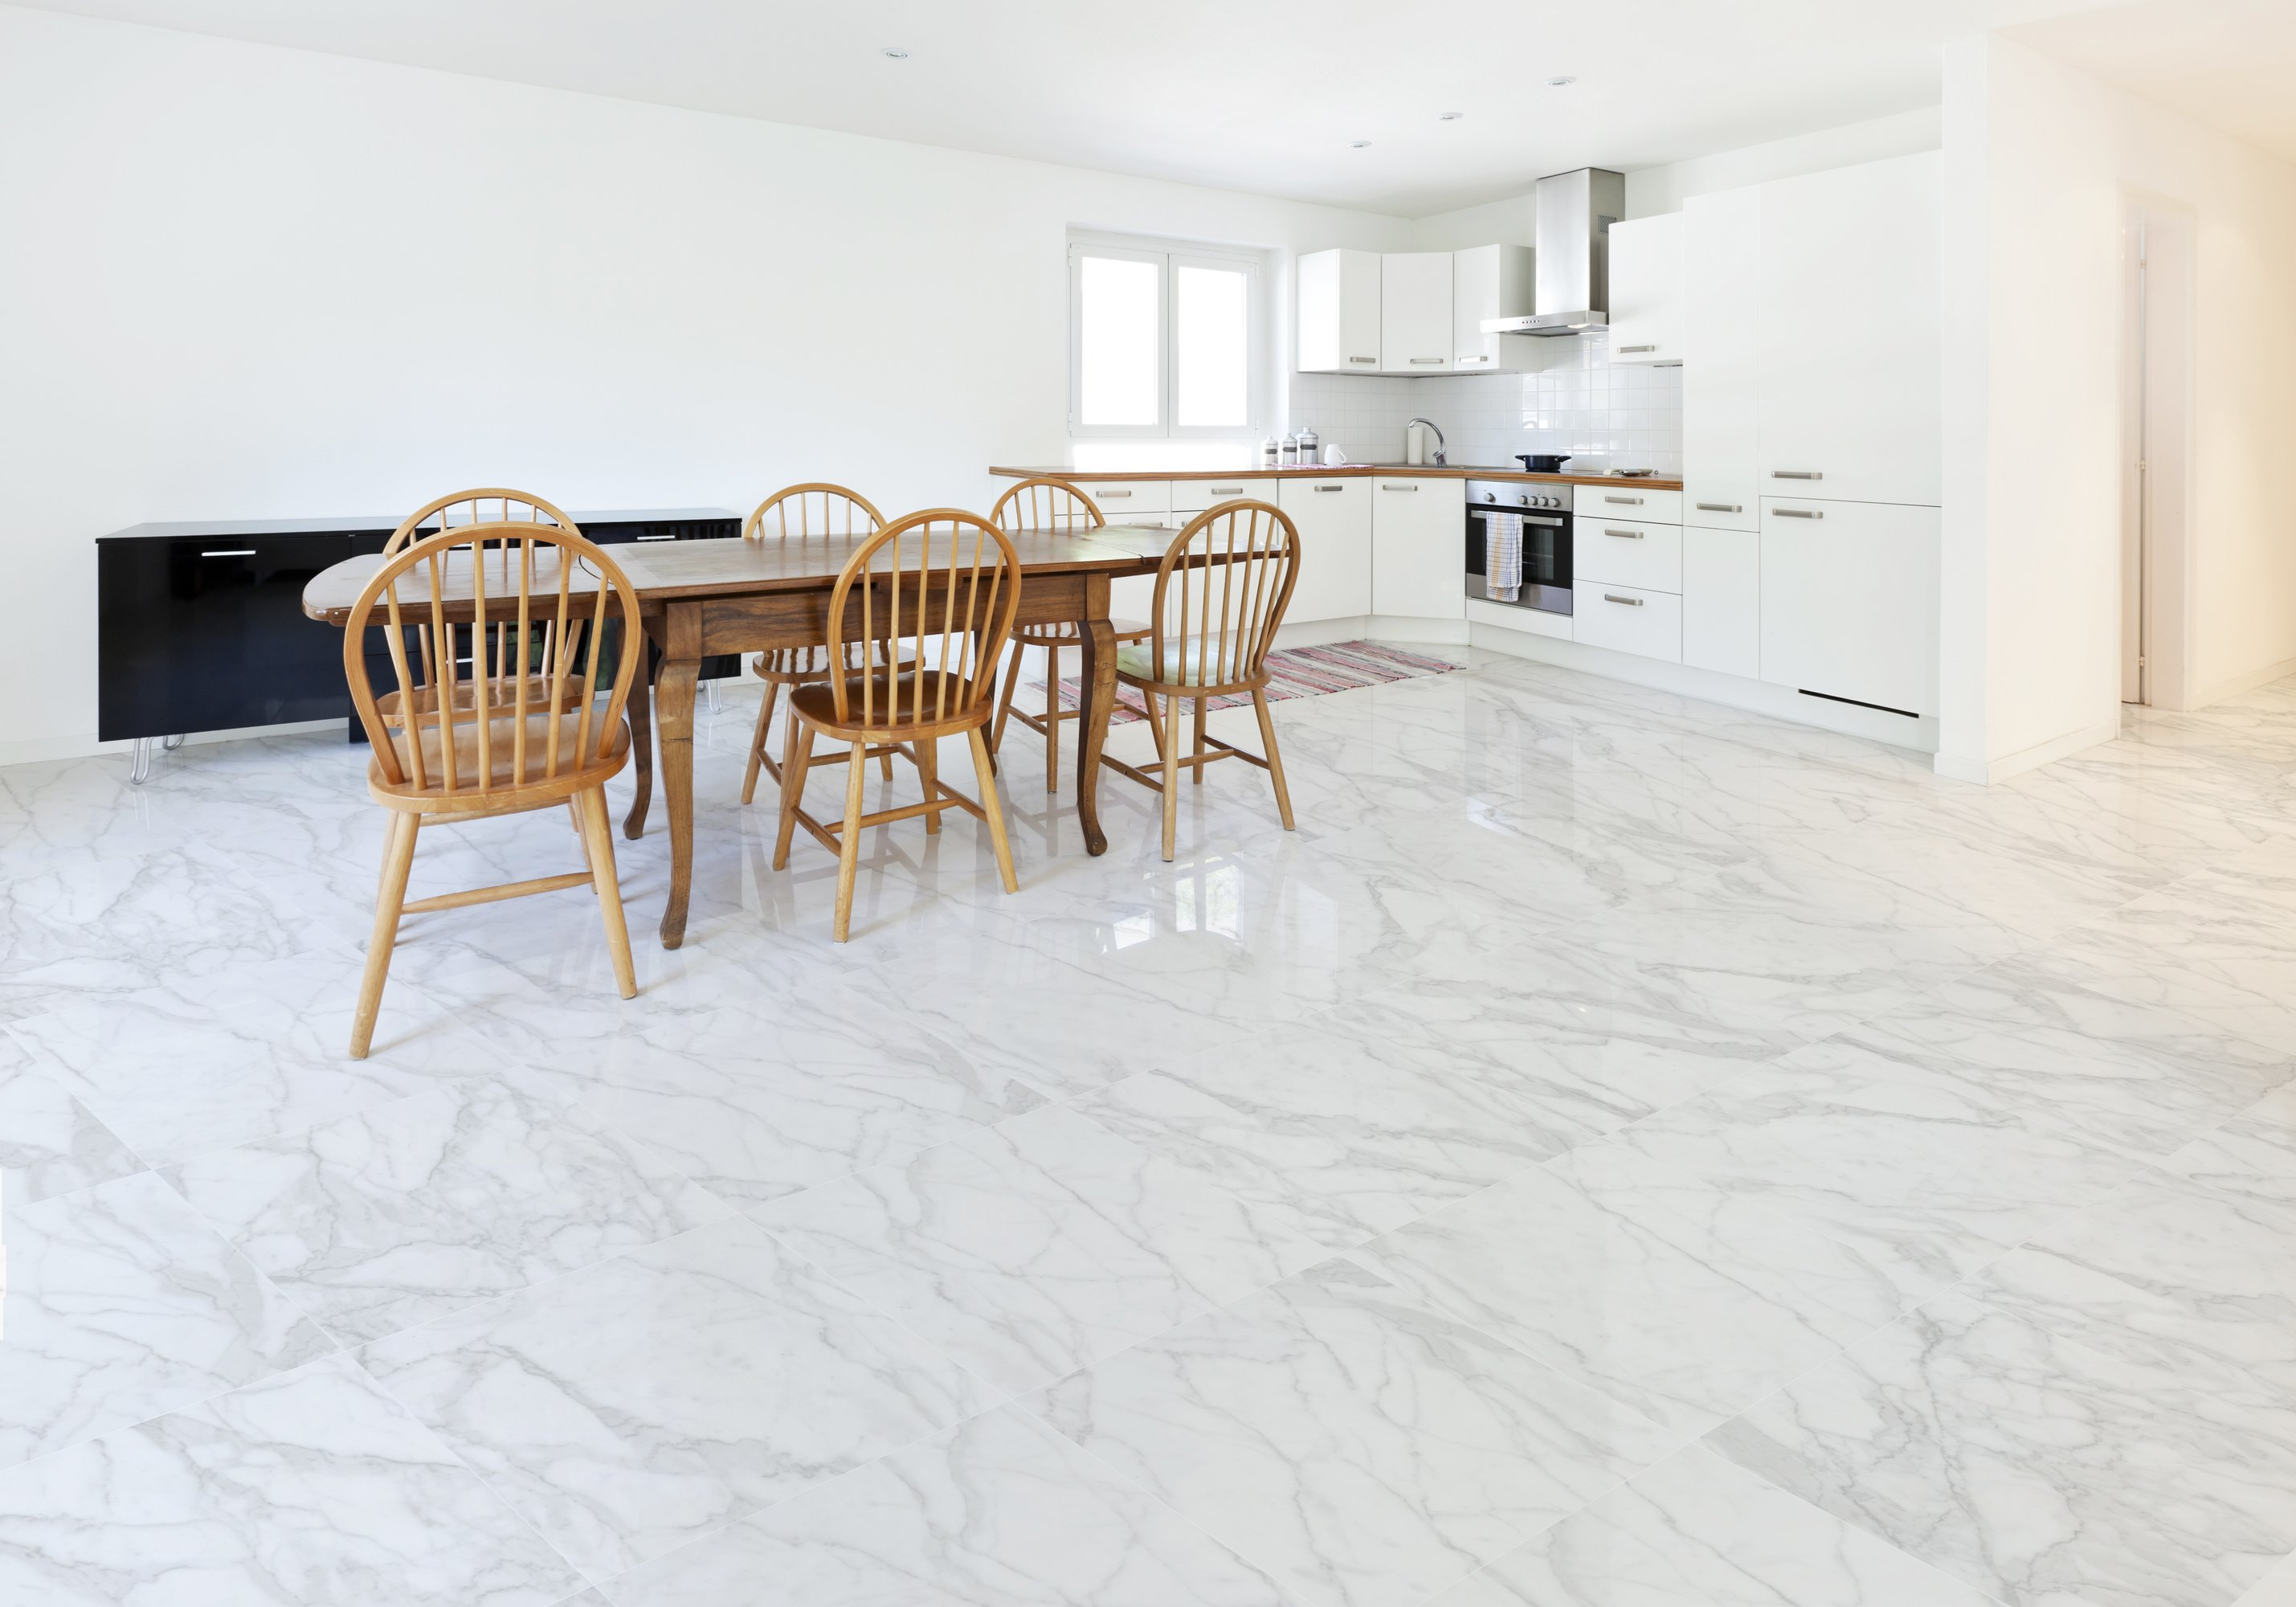 2018 kitchen flooring trends 20 flooring ideas for the perfect 2018 kitchen flooring trends 20 flooring ideas for the perfect kitchen get inspired dailygadgetfo Images